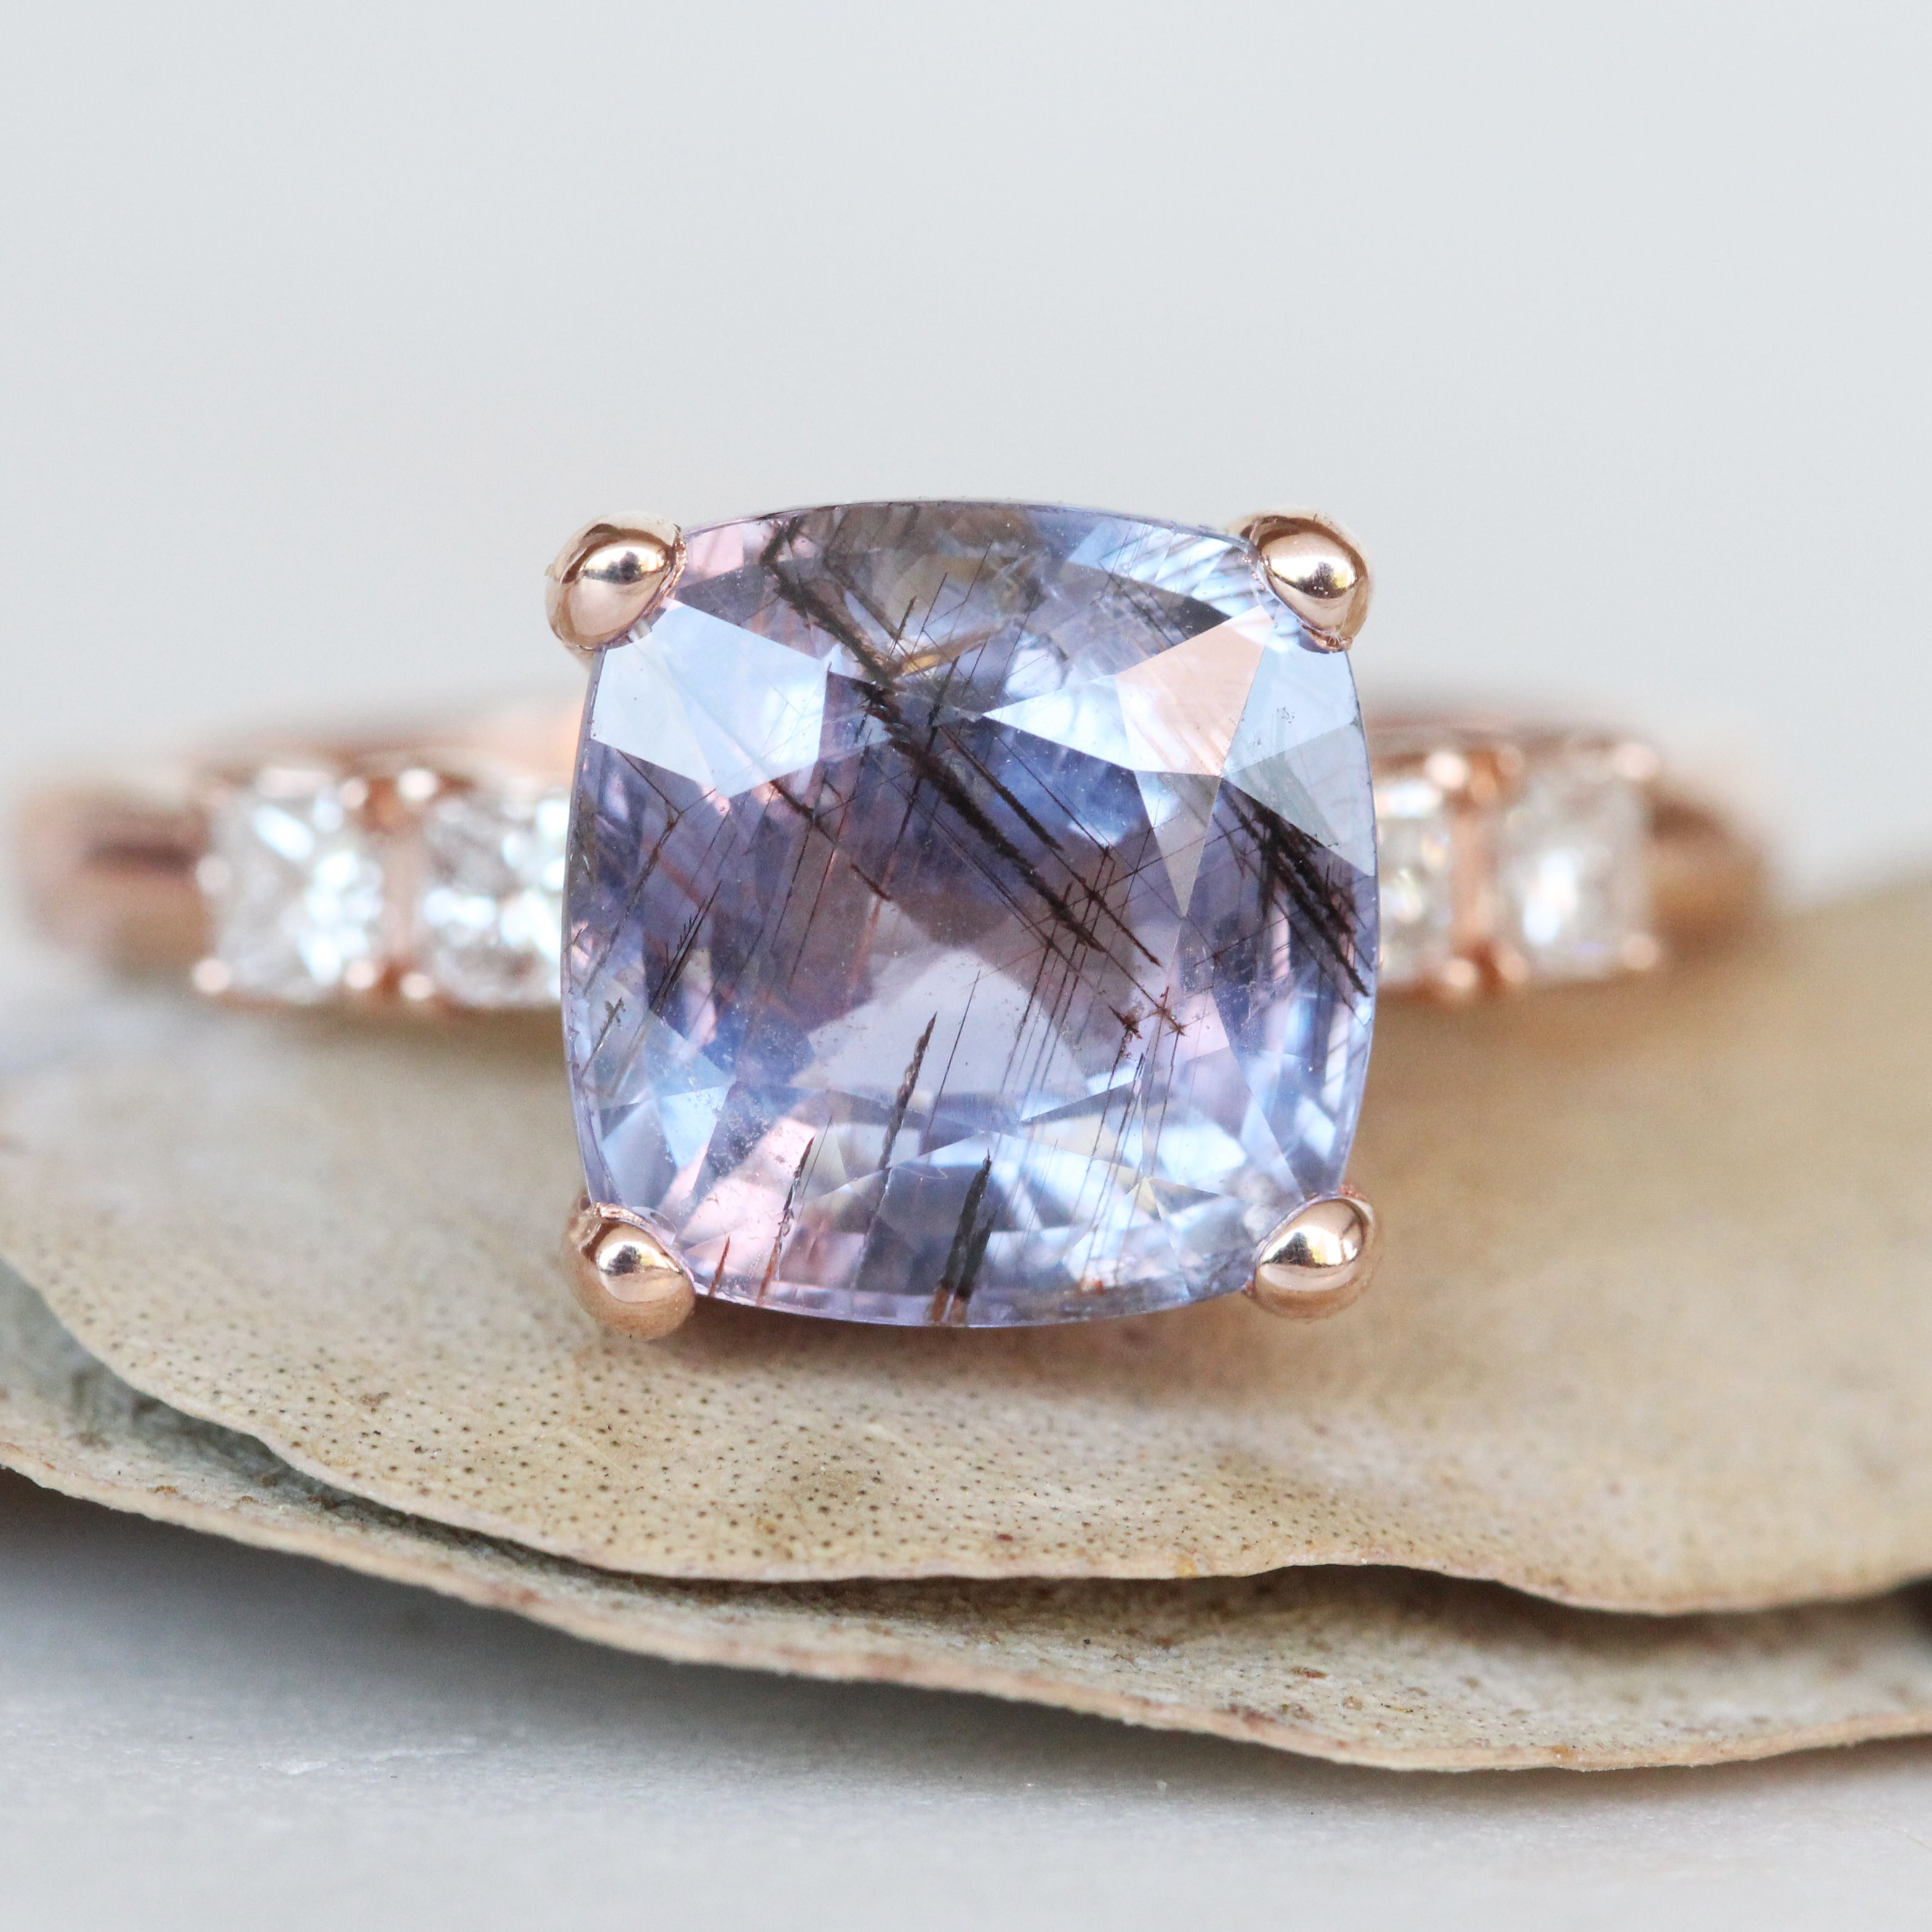 Ezra ring - 4.53 carat rare Purple to Blue Color Change Sapphire with Rutile like inclusions and princess cut accent diamonds in 14k rose gold - Ready to size and ship - Midwinter Co. Alternative Bridal Rings and Modern Fine Jewelry